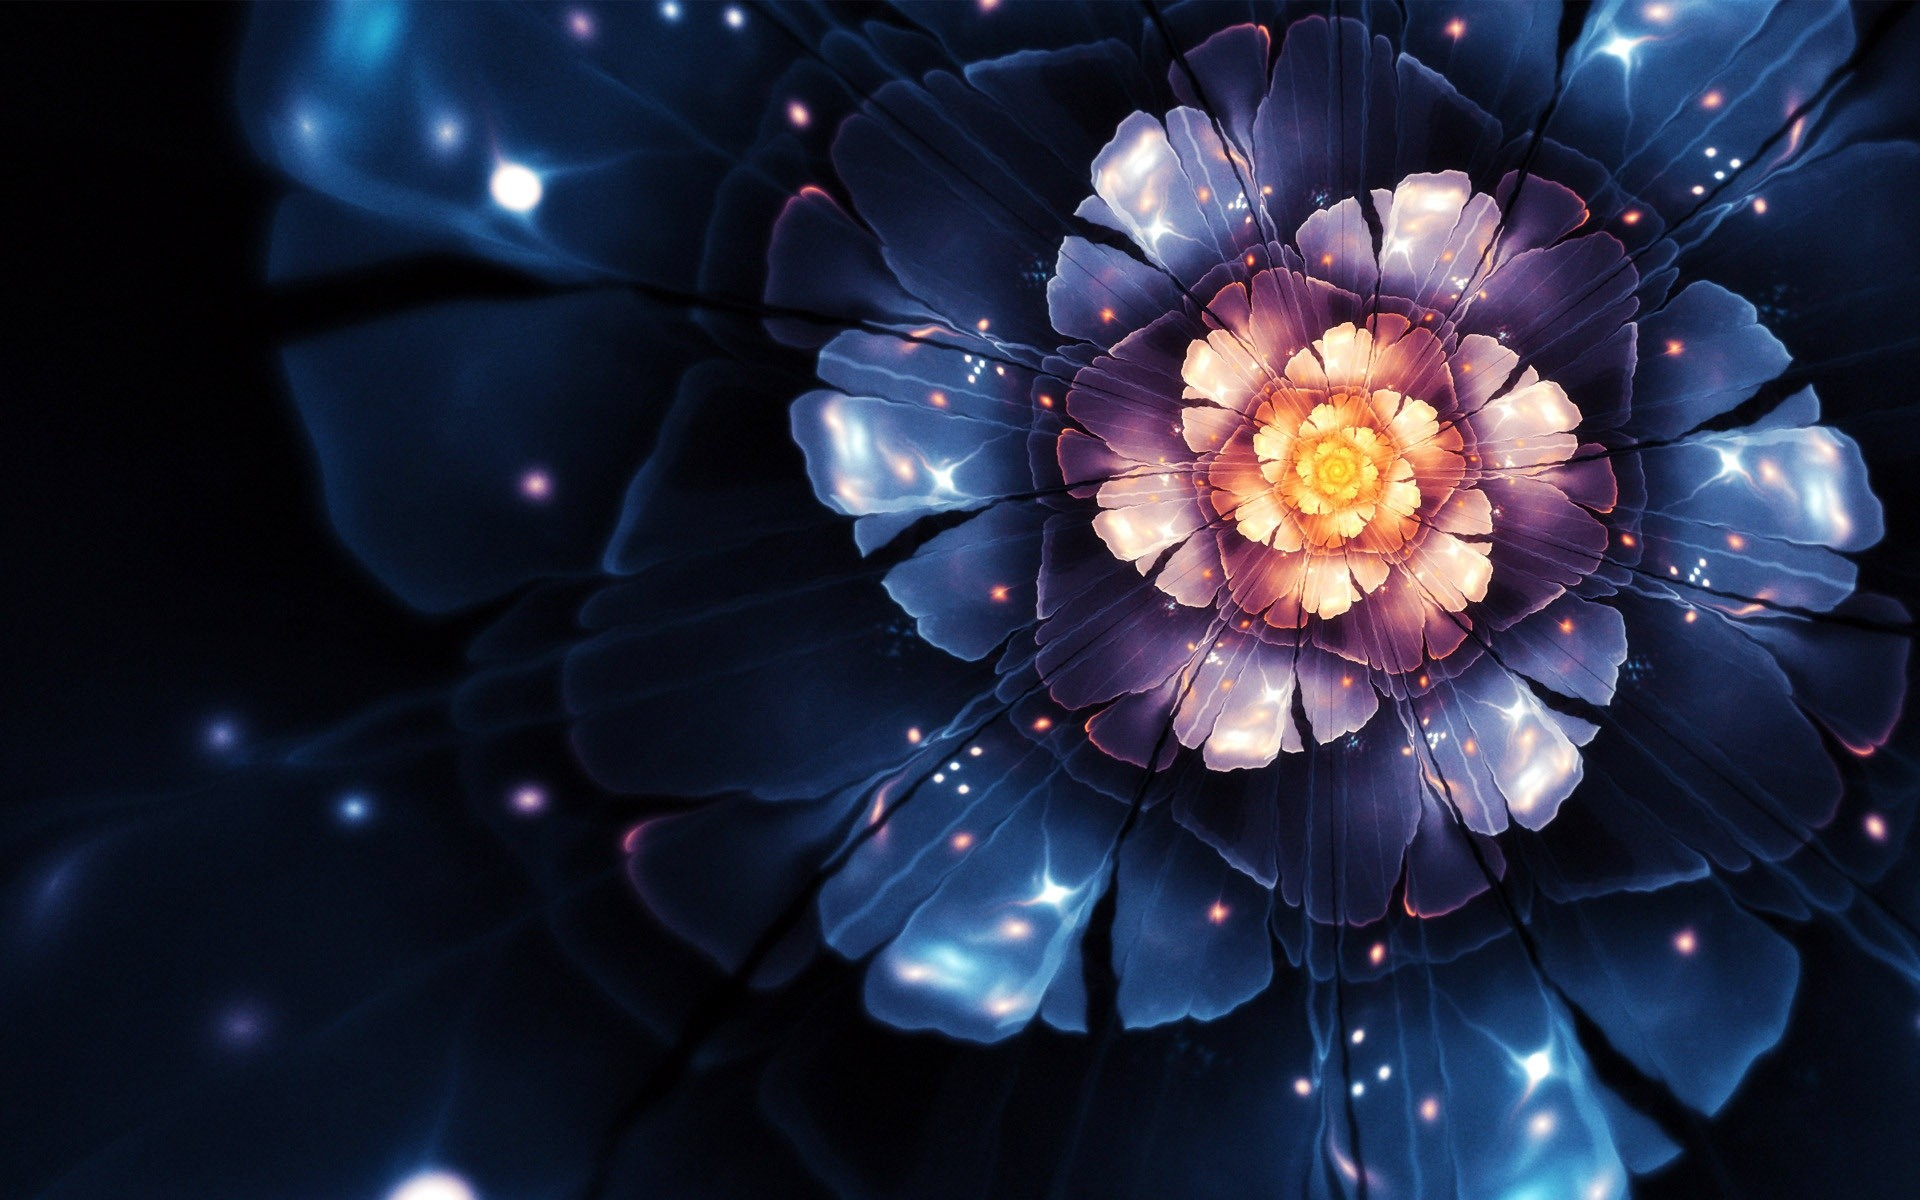 1920x1200 flower wallpaper 1 flower wallpaper 2 flower wallpaper 3 ...